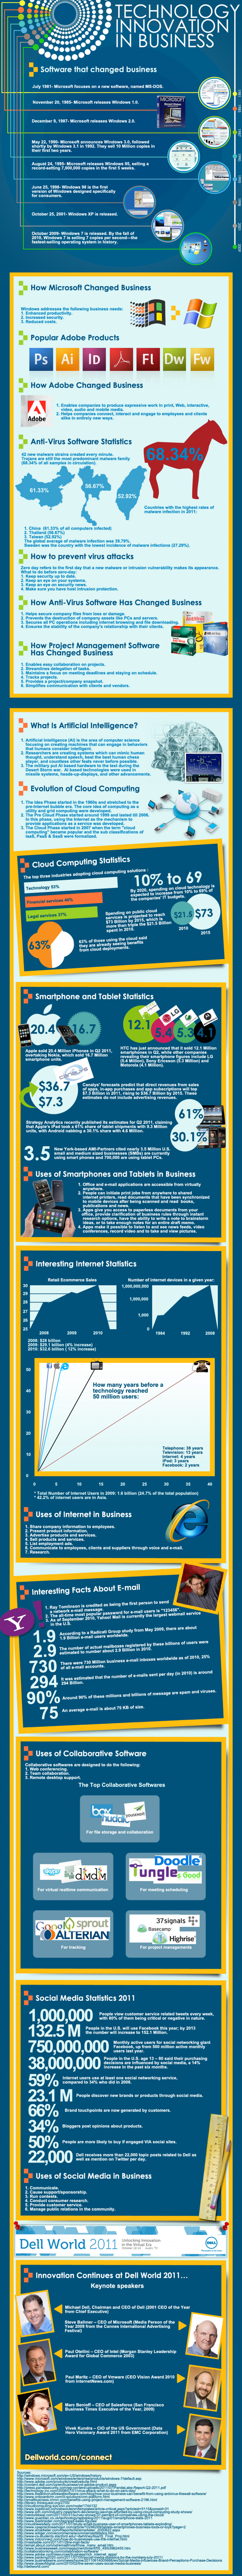 Inside Enterprise IT Infographic